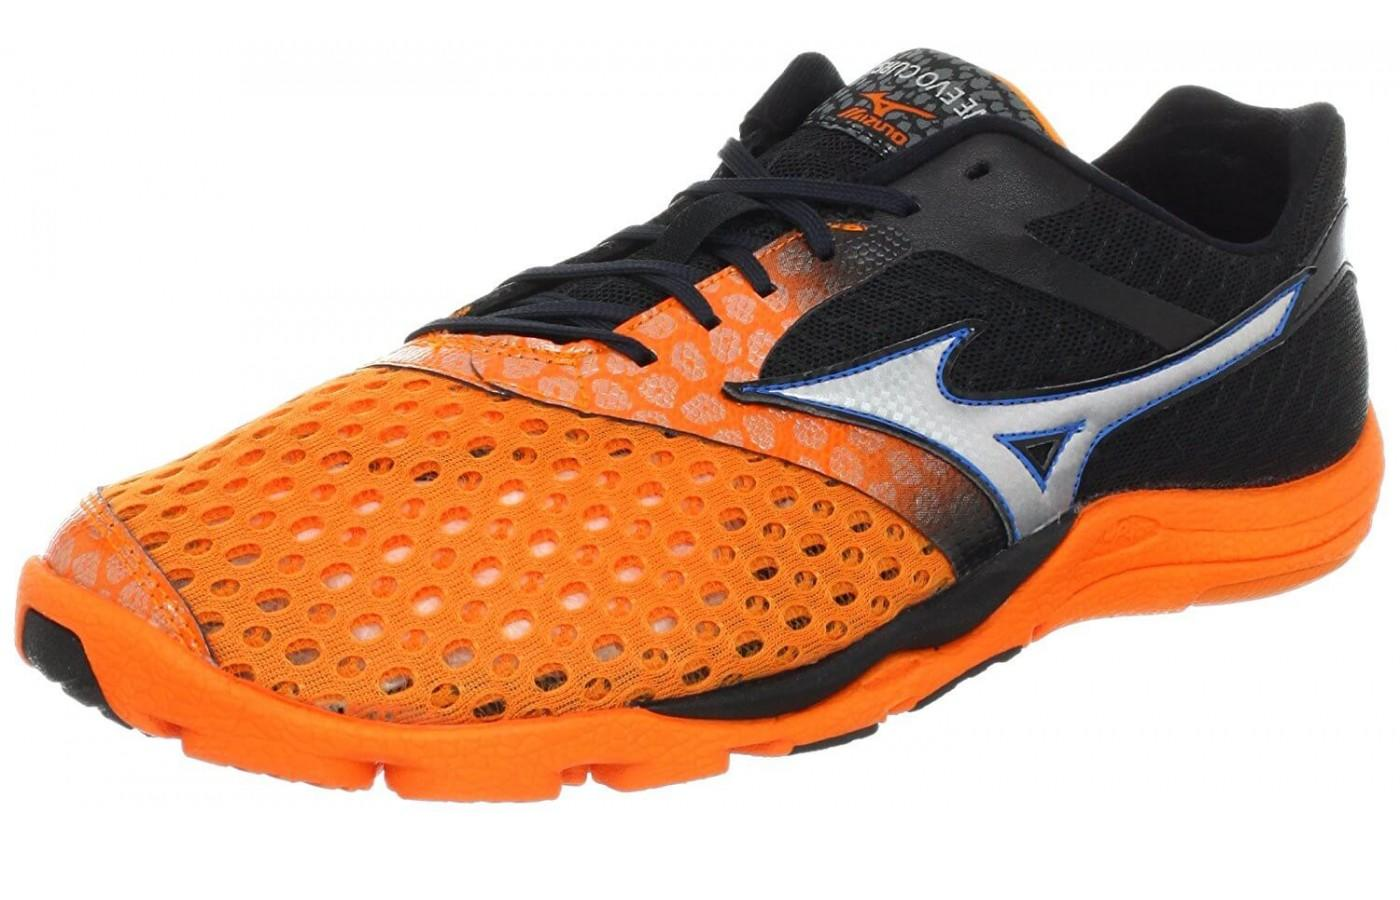 the Mizuno Wave Evo Cursoris shown from the front/side